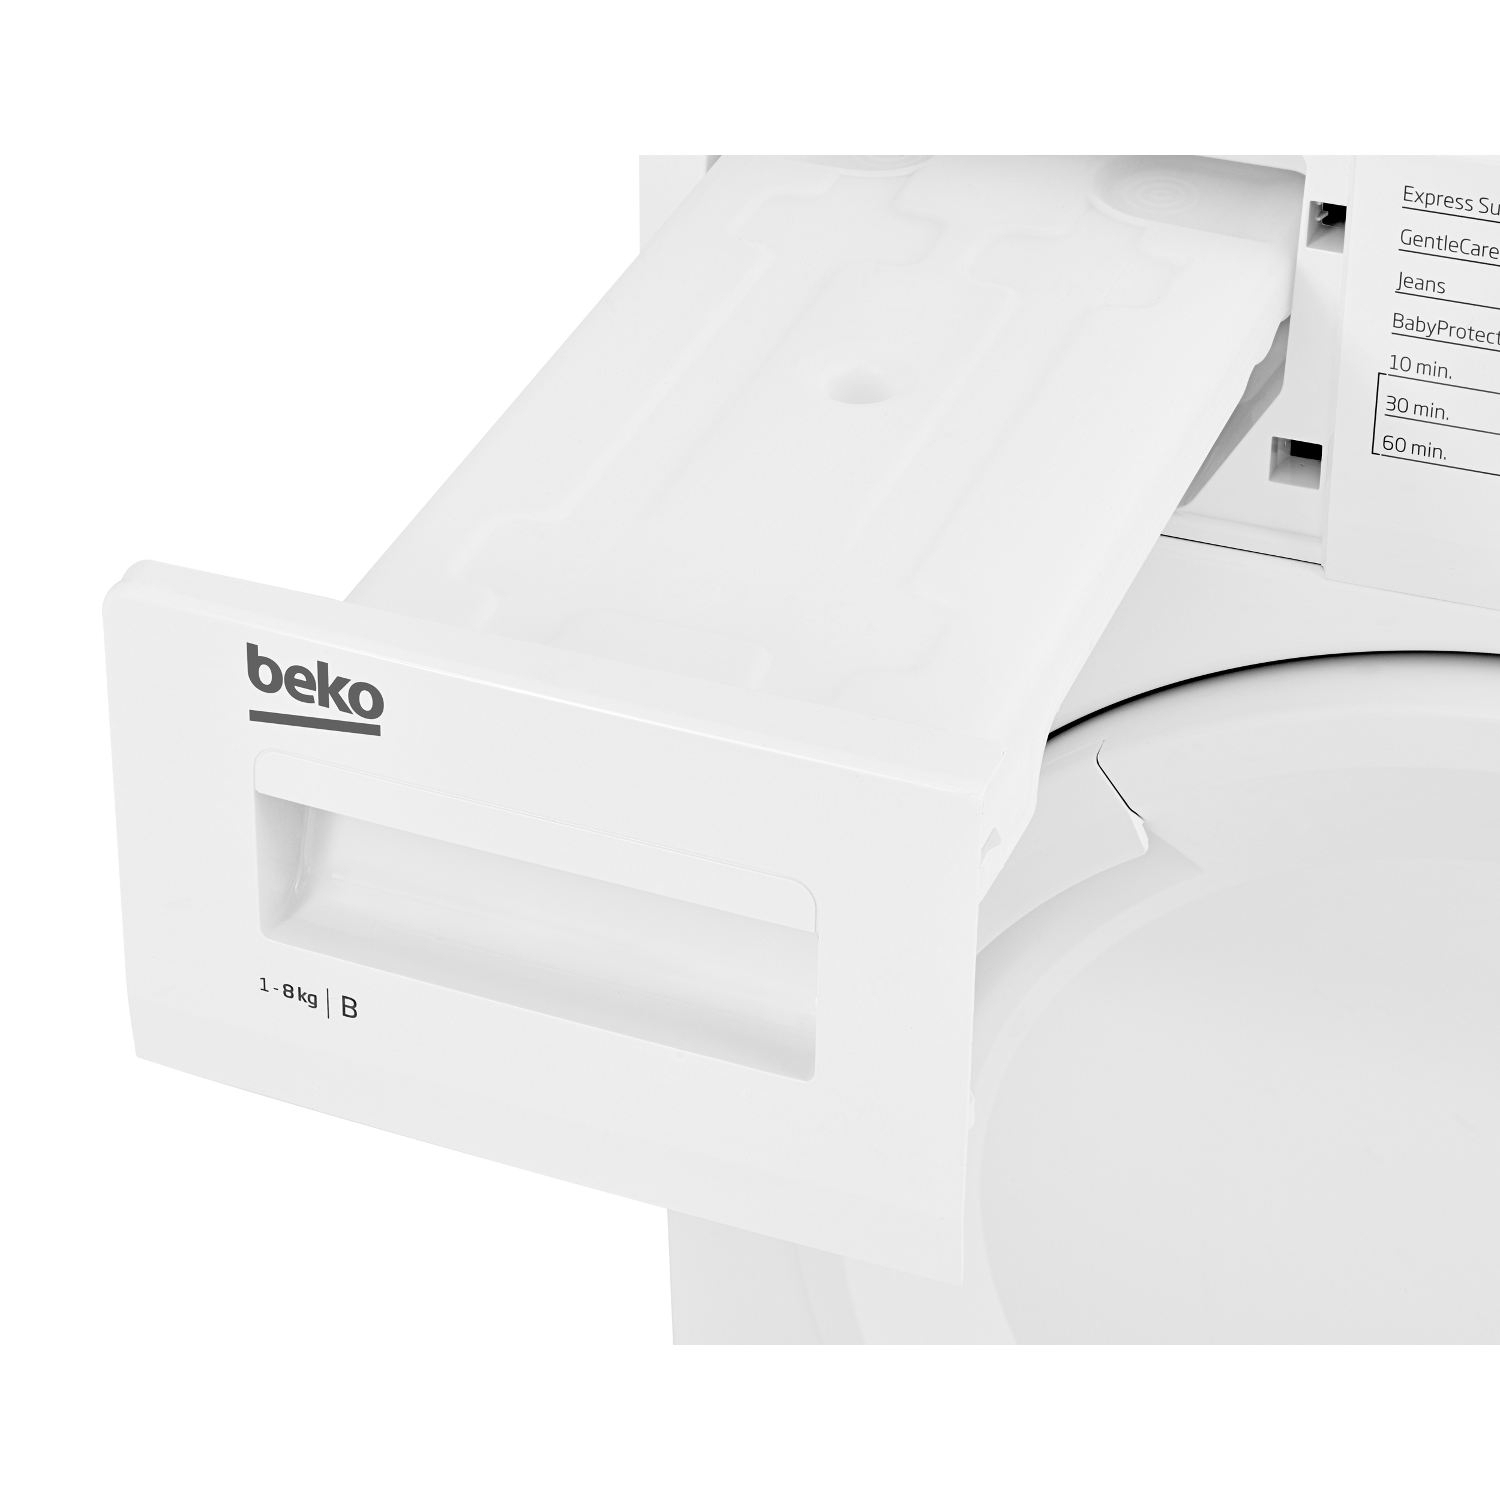 Beko 8kg Condenser Tumble Dryer - White - B Rated - 5